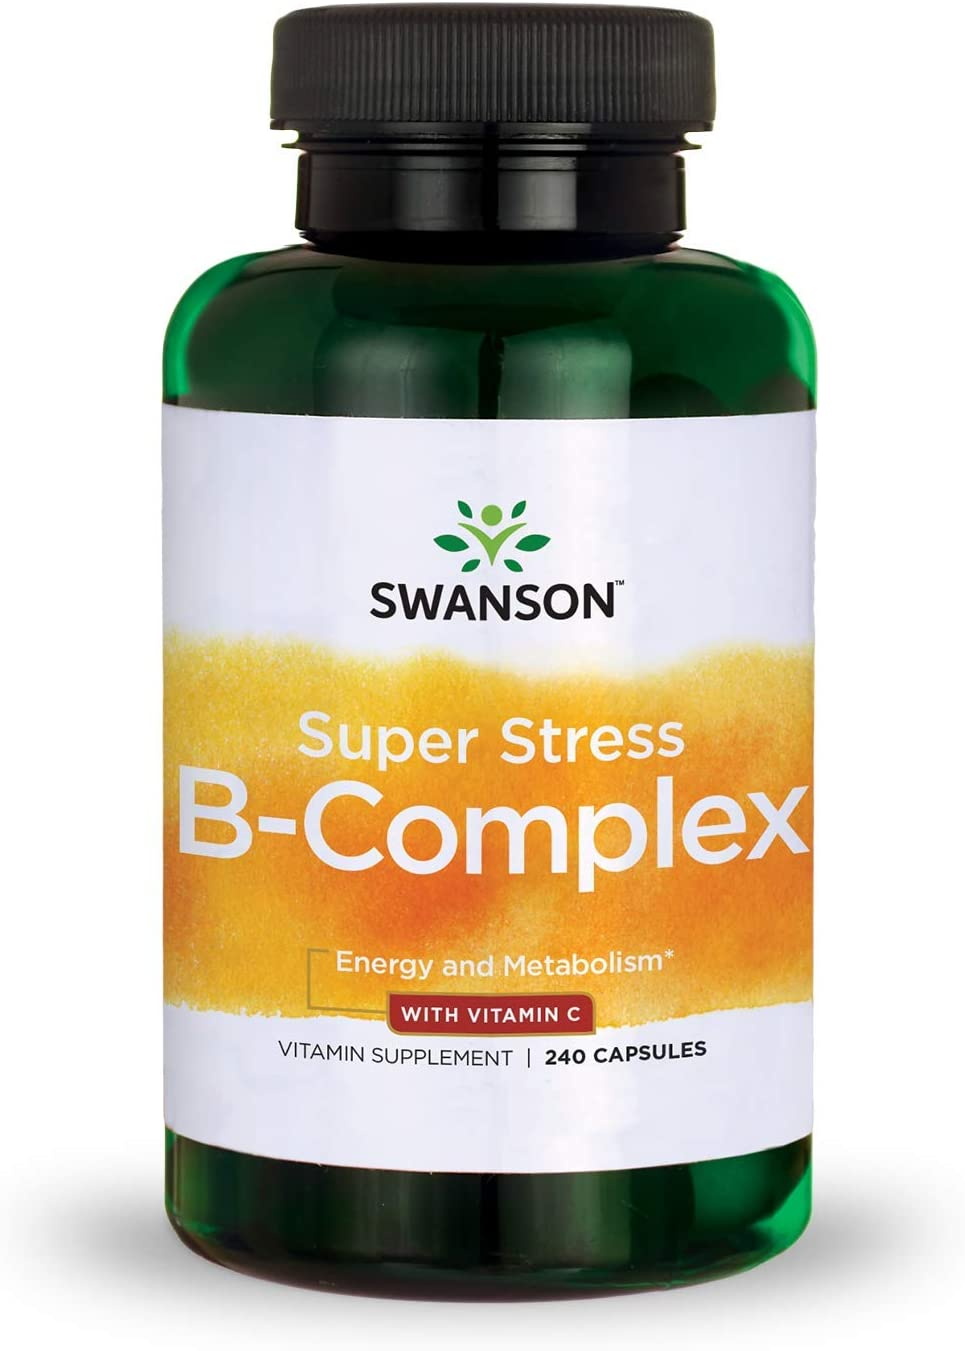 Swanson Super Stress Vitamin B-Complex with Vitamin C 240 Caps